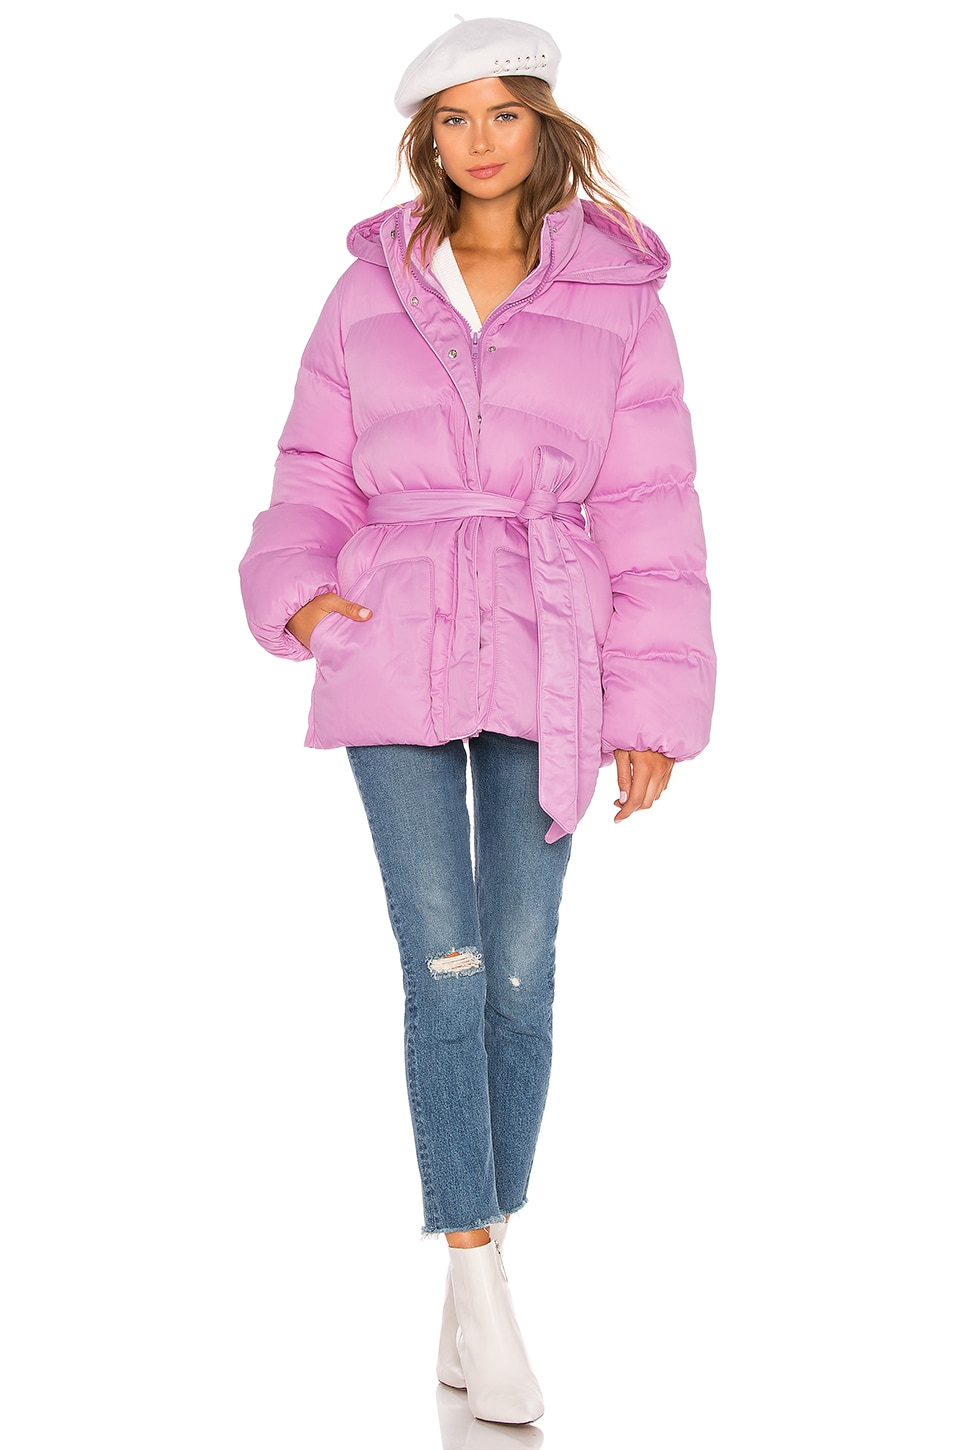 Lovers + Friends Lindsey Belted Puffer Jacket in Bubblegum Pink